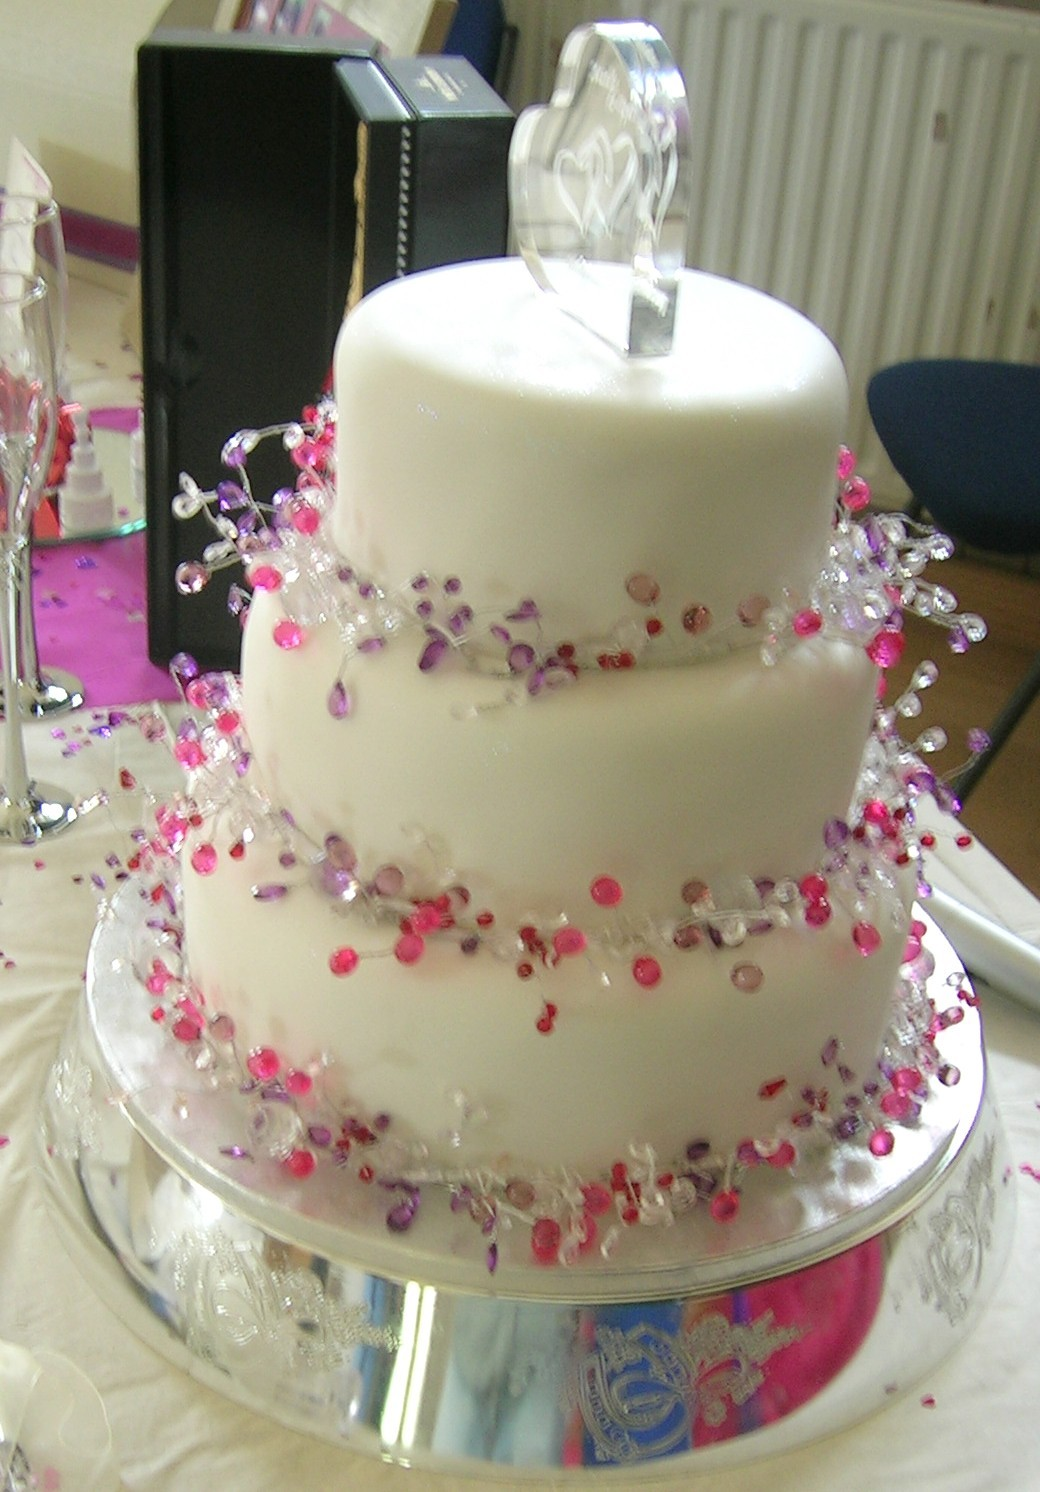 Wedding Cake Decorating Ideas Wedding Pictures Wedding Photos: Wedding Cake  Decorating Pictures